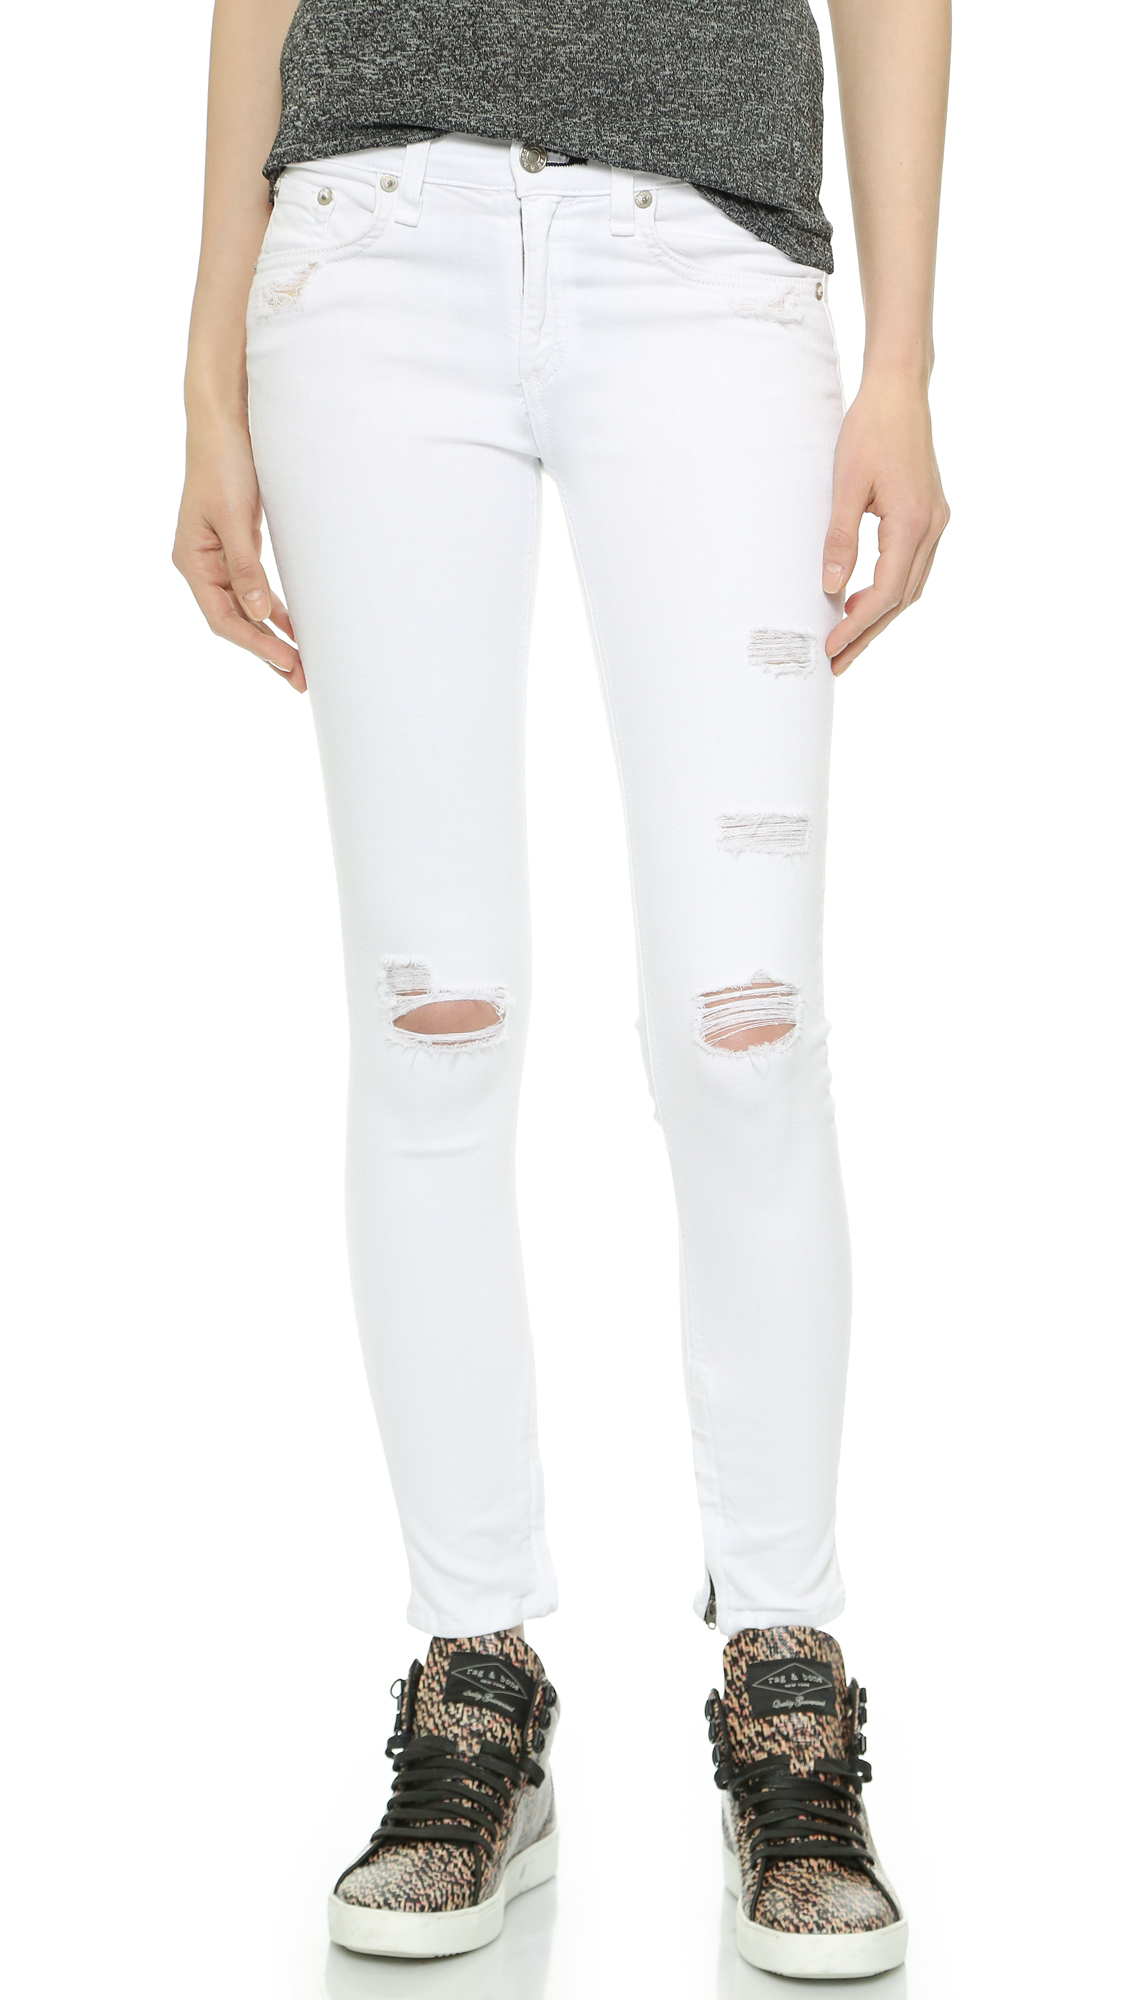 Rag & bone The Shredded Zipper Capri Jeans - Bright White Shredded ...